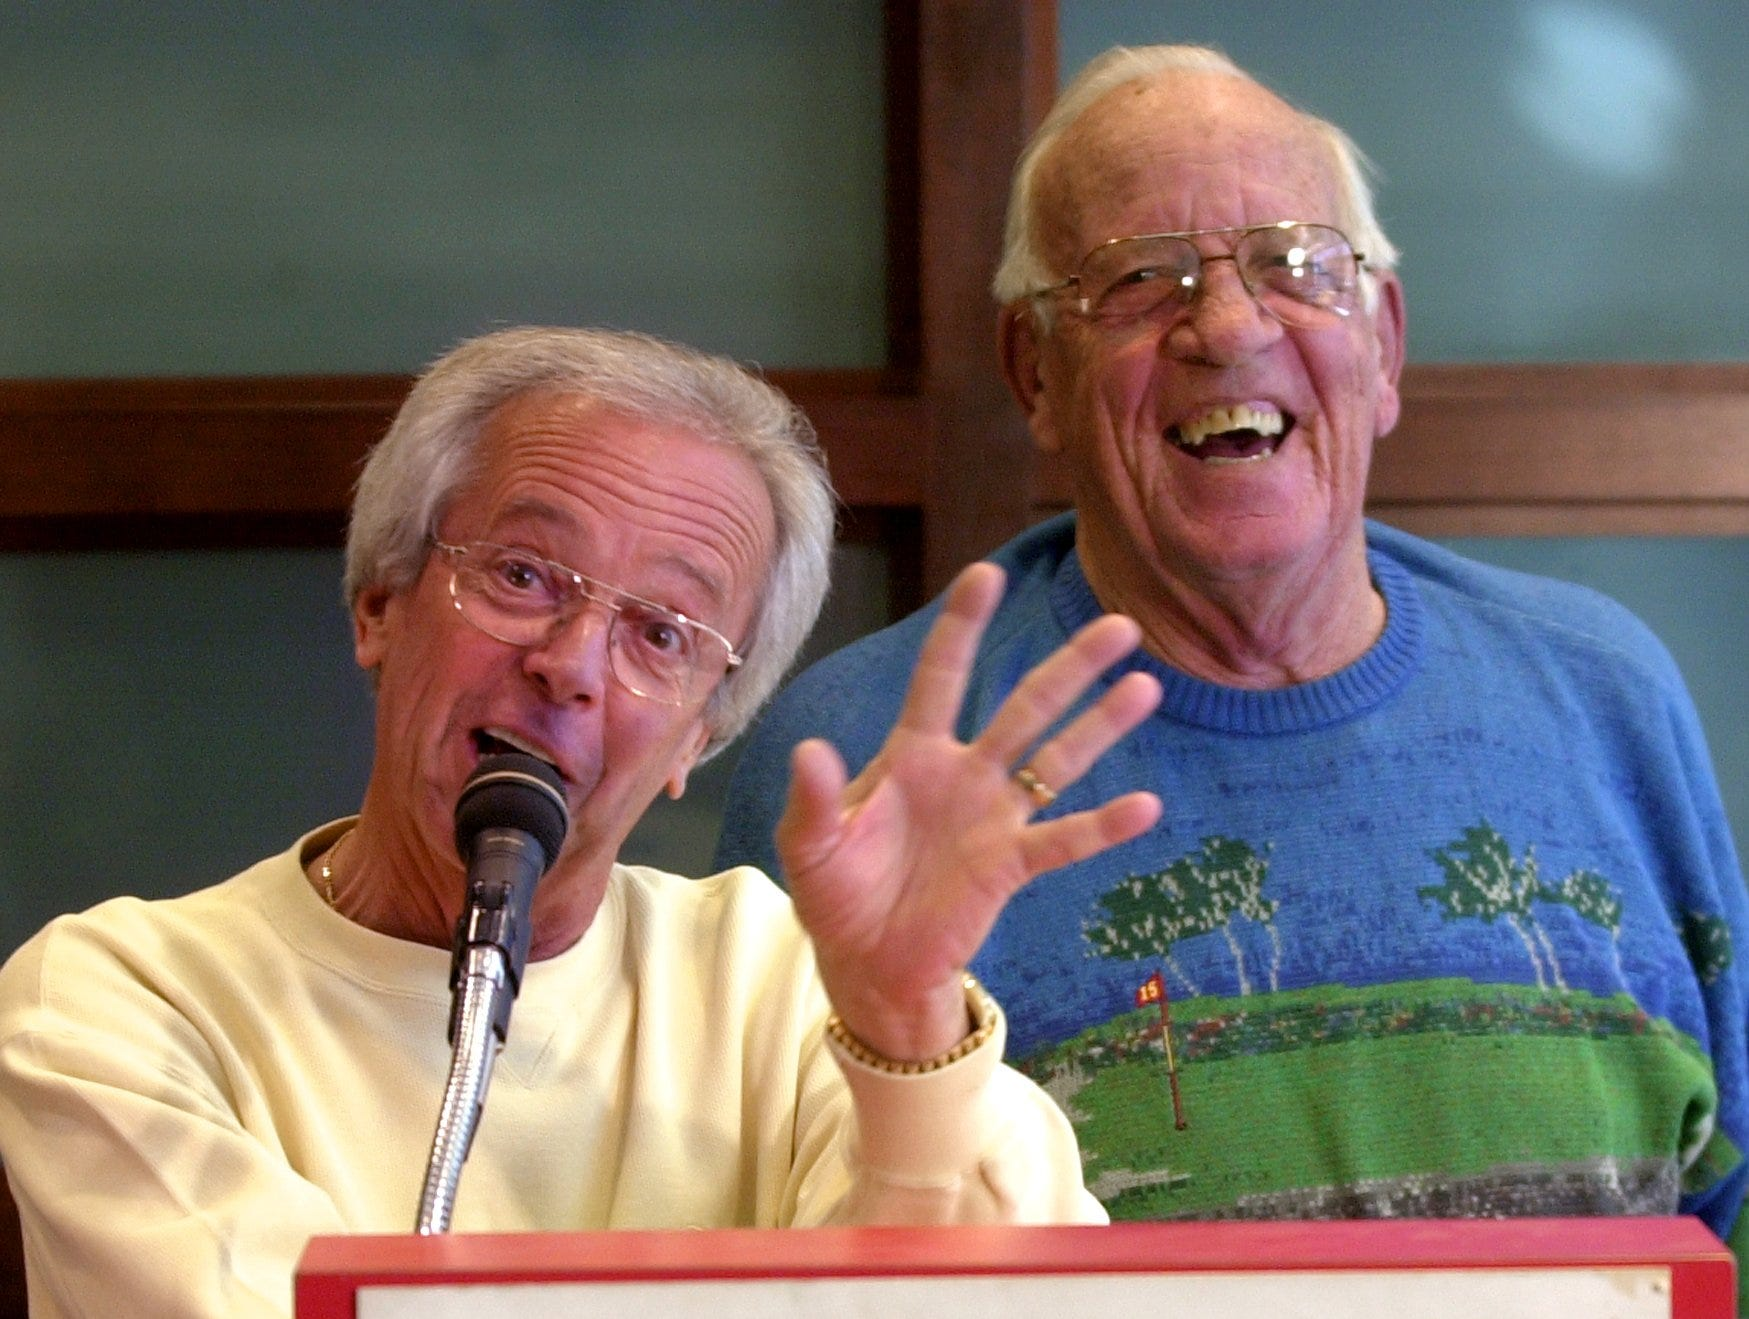 """2002.11.01.08.01 NUXHALL SPORTS : Cincinnati Reds radio broadcasters Marty Brennaman (left) and Joe Nuxhall (right) tell stories about baseball and some """"inside jokes"""" as Marty called them during a press conference announcing Nuxhall's retirement in 2004. This will give him a full season this season and 60 games the next season. One game for each year he has been with the organization. The press conference was held at the new administration building at the Great American Ball Park Friday November 1, 2002."""